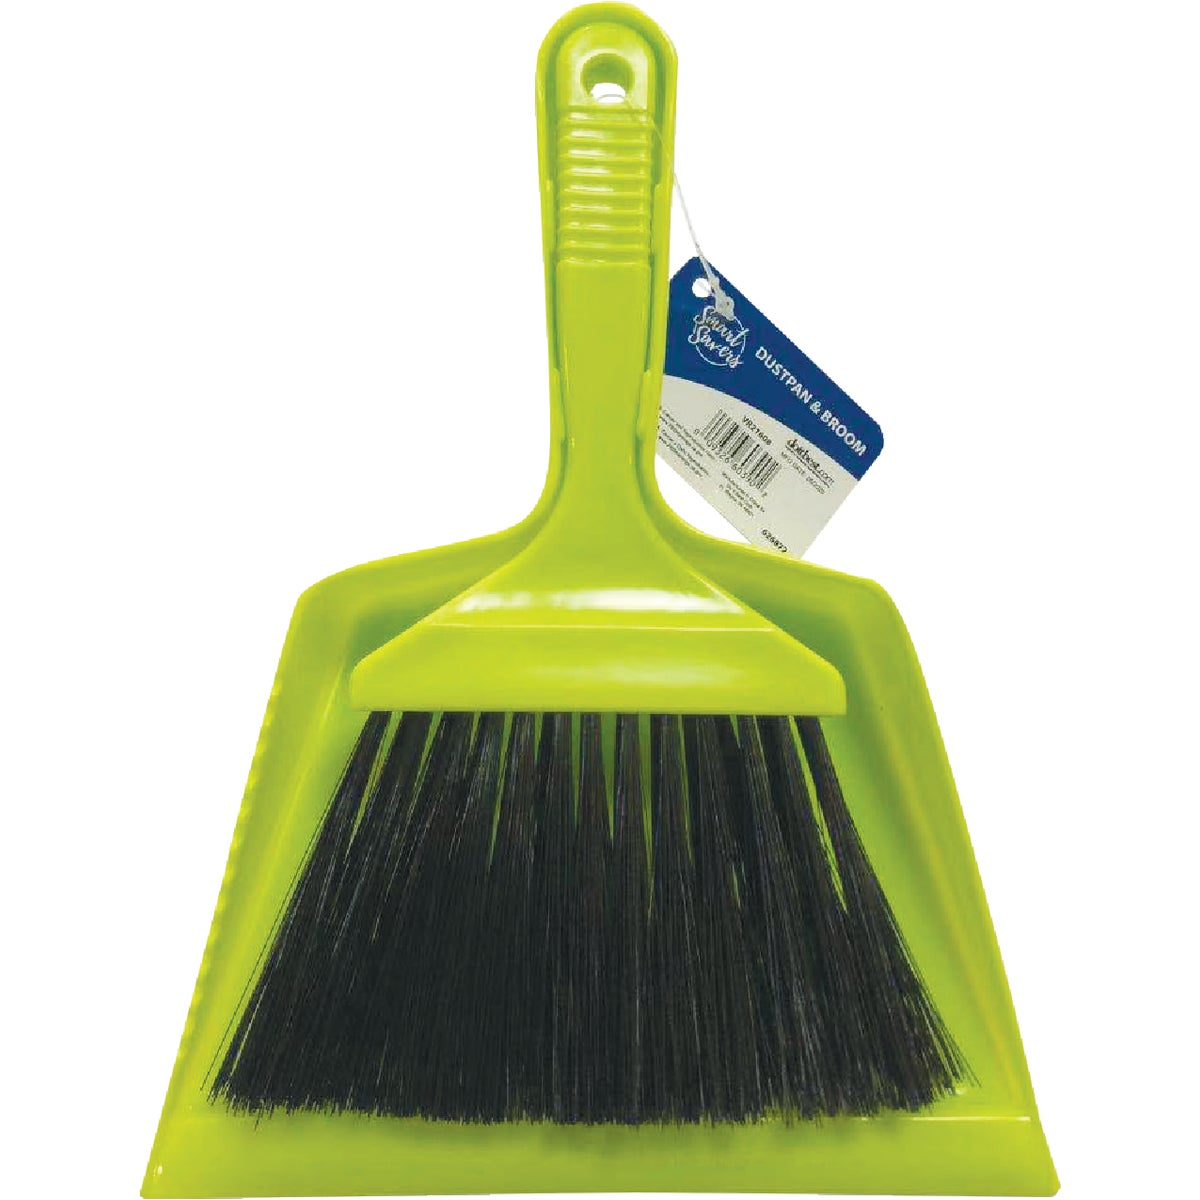 DUSTPAN AND BROOM - 820024 by Do it Best